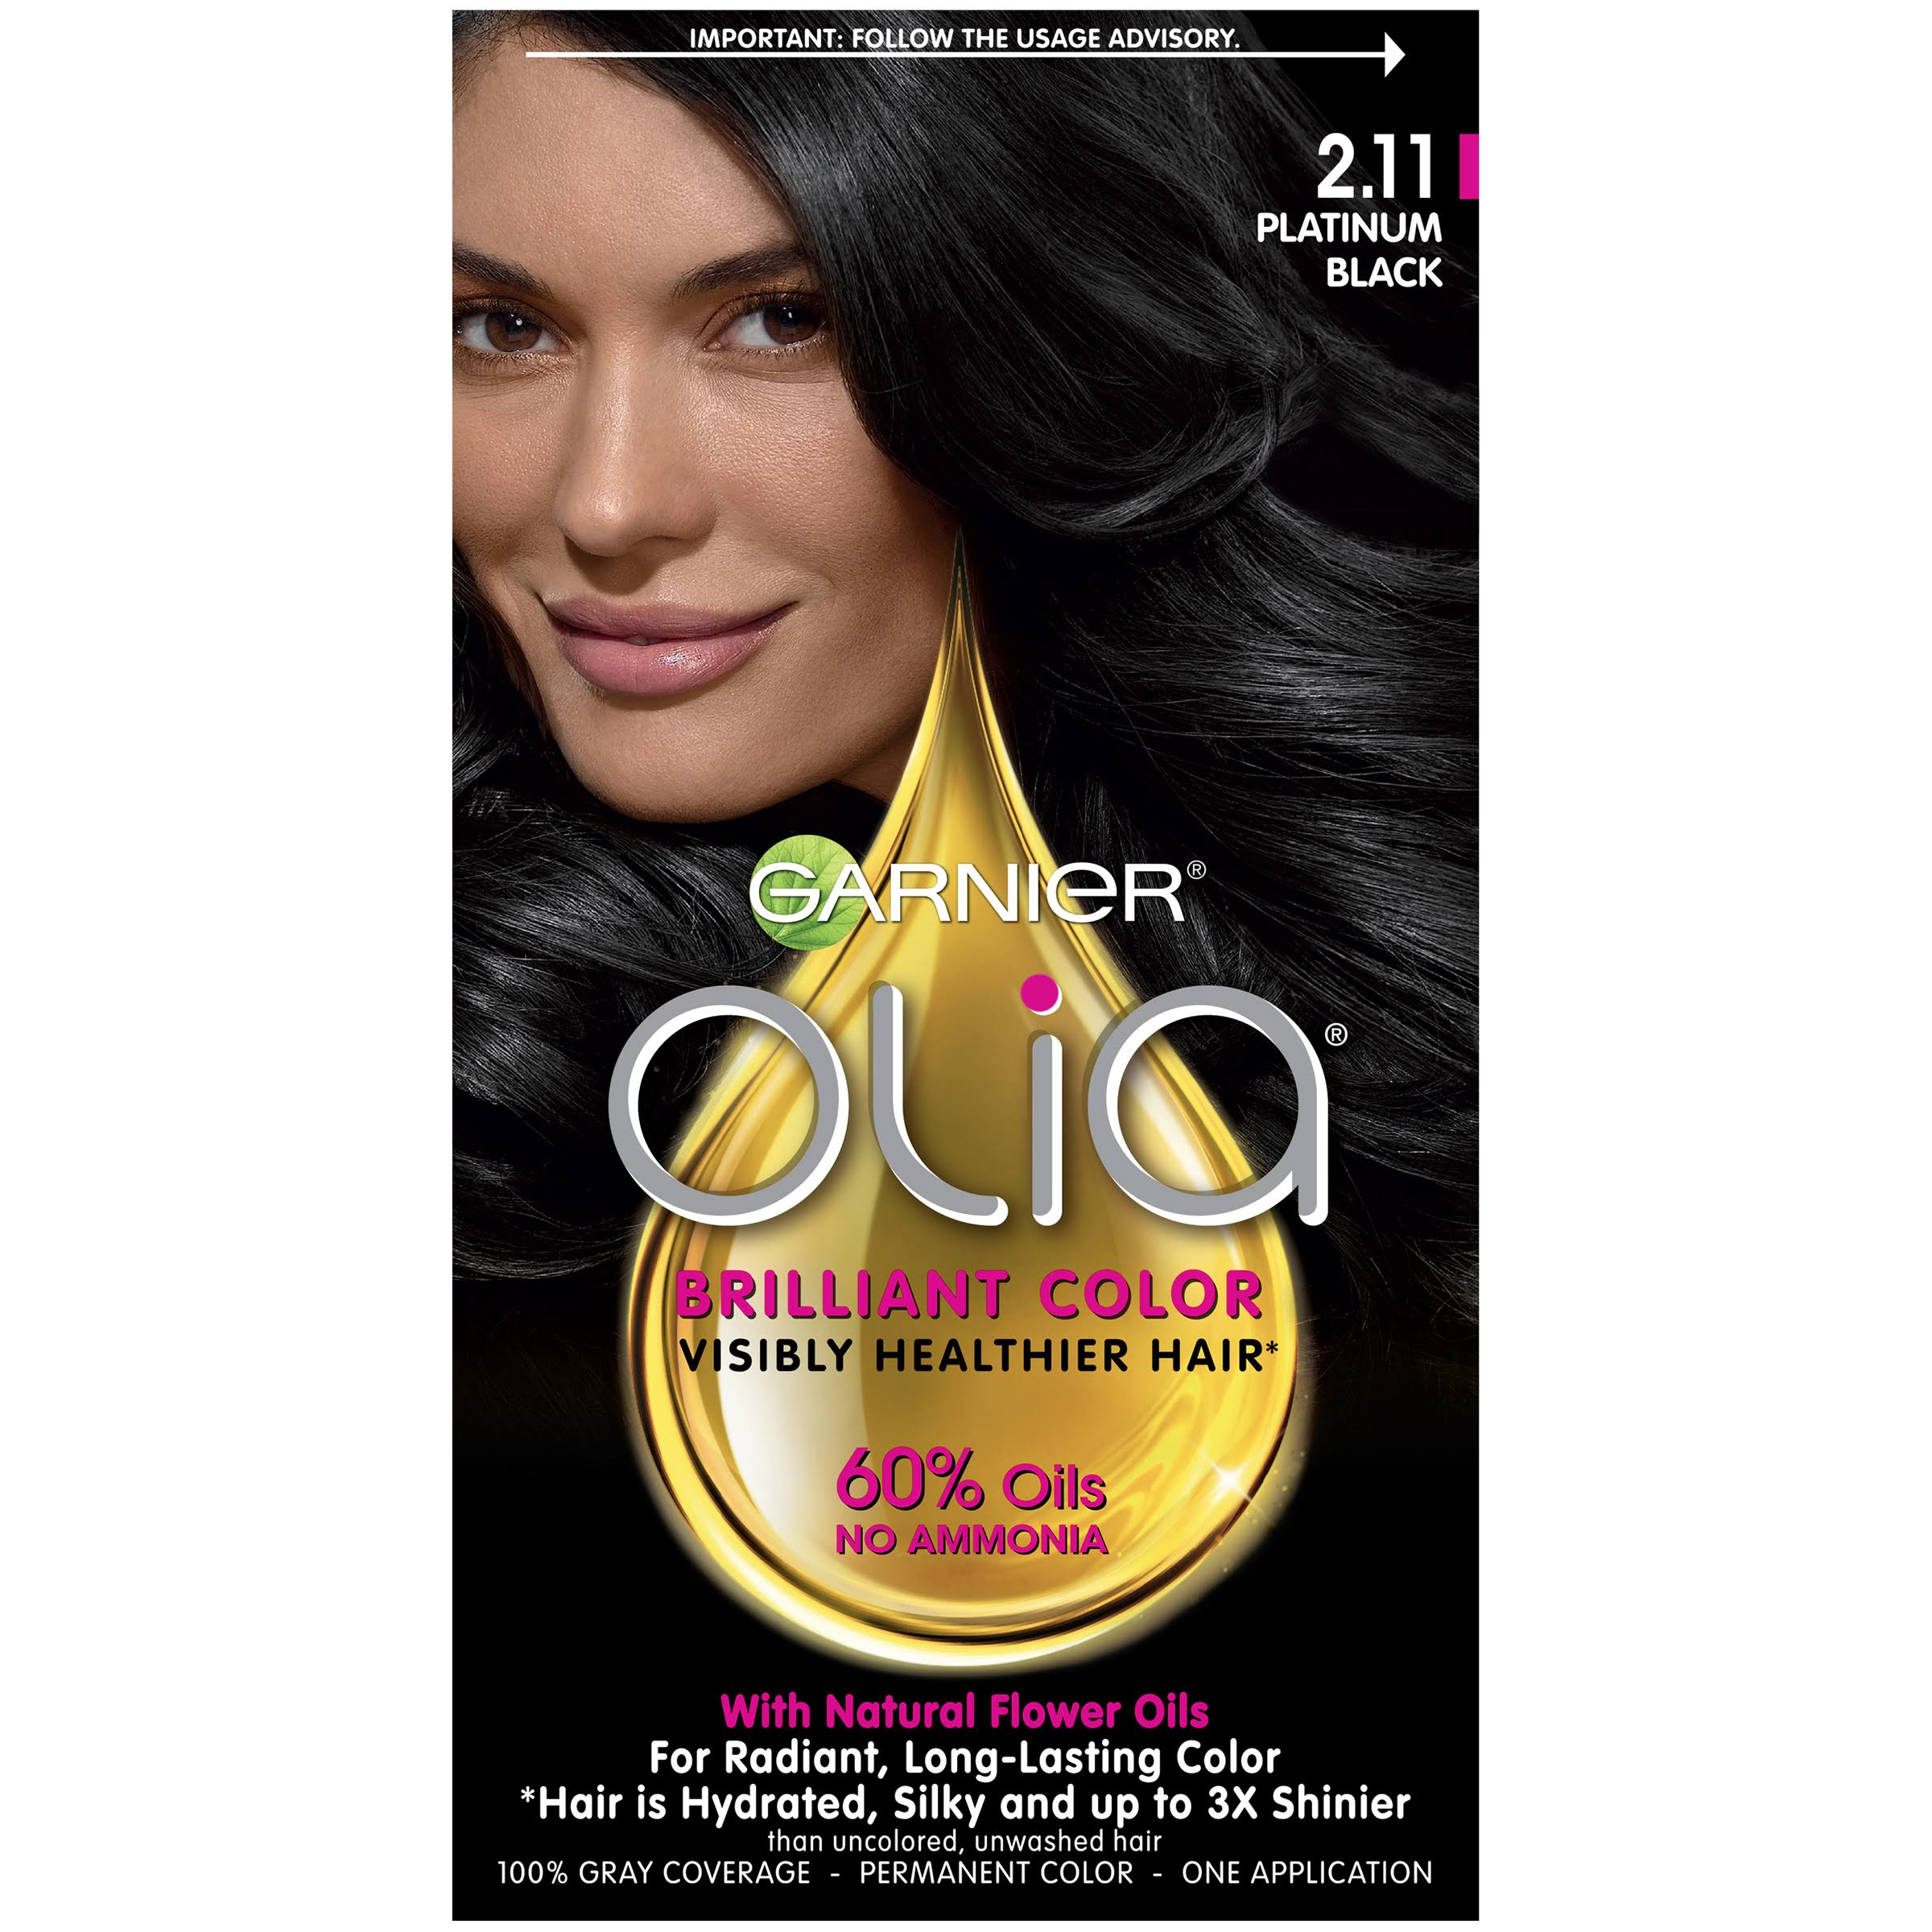 Garnier Olia Oil Powered Permanent Hair Color - 2.11 Platinum Black